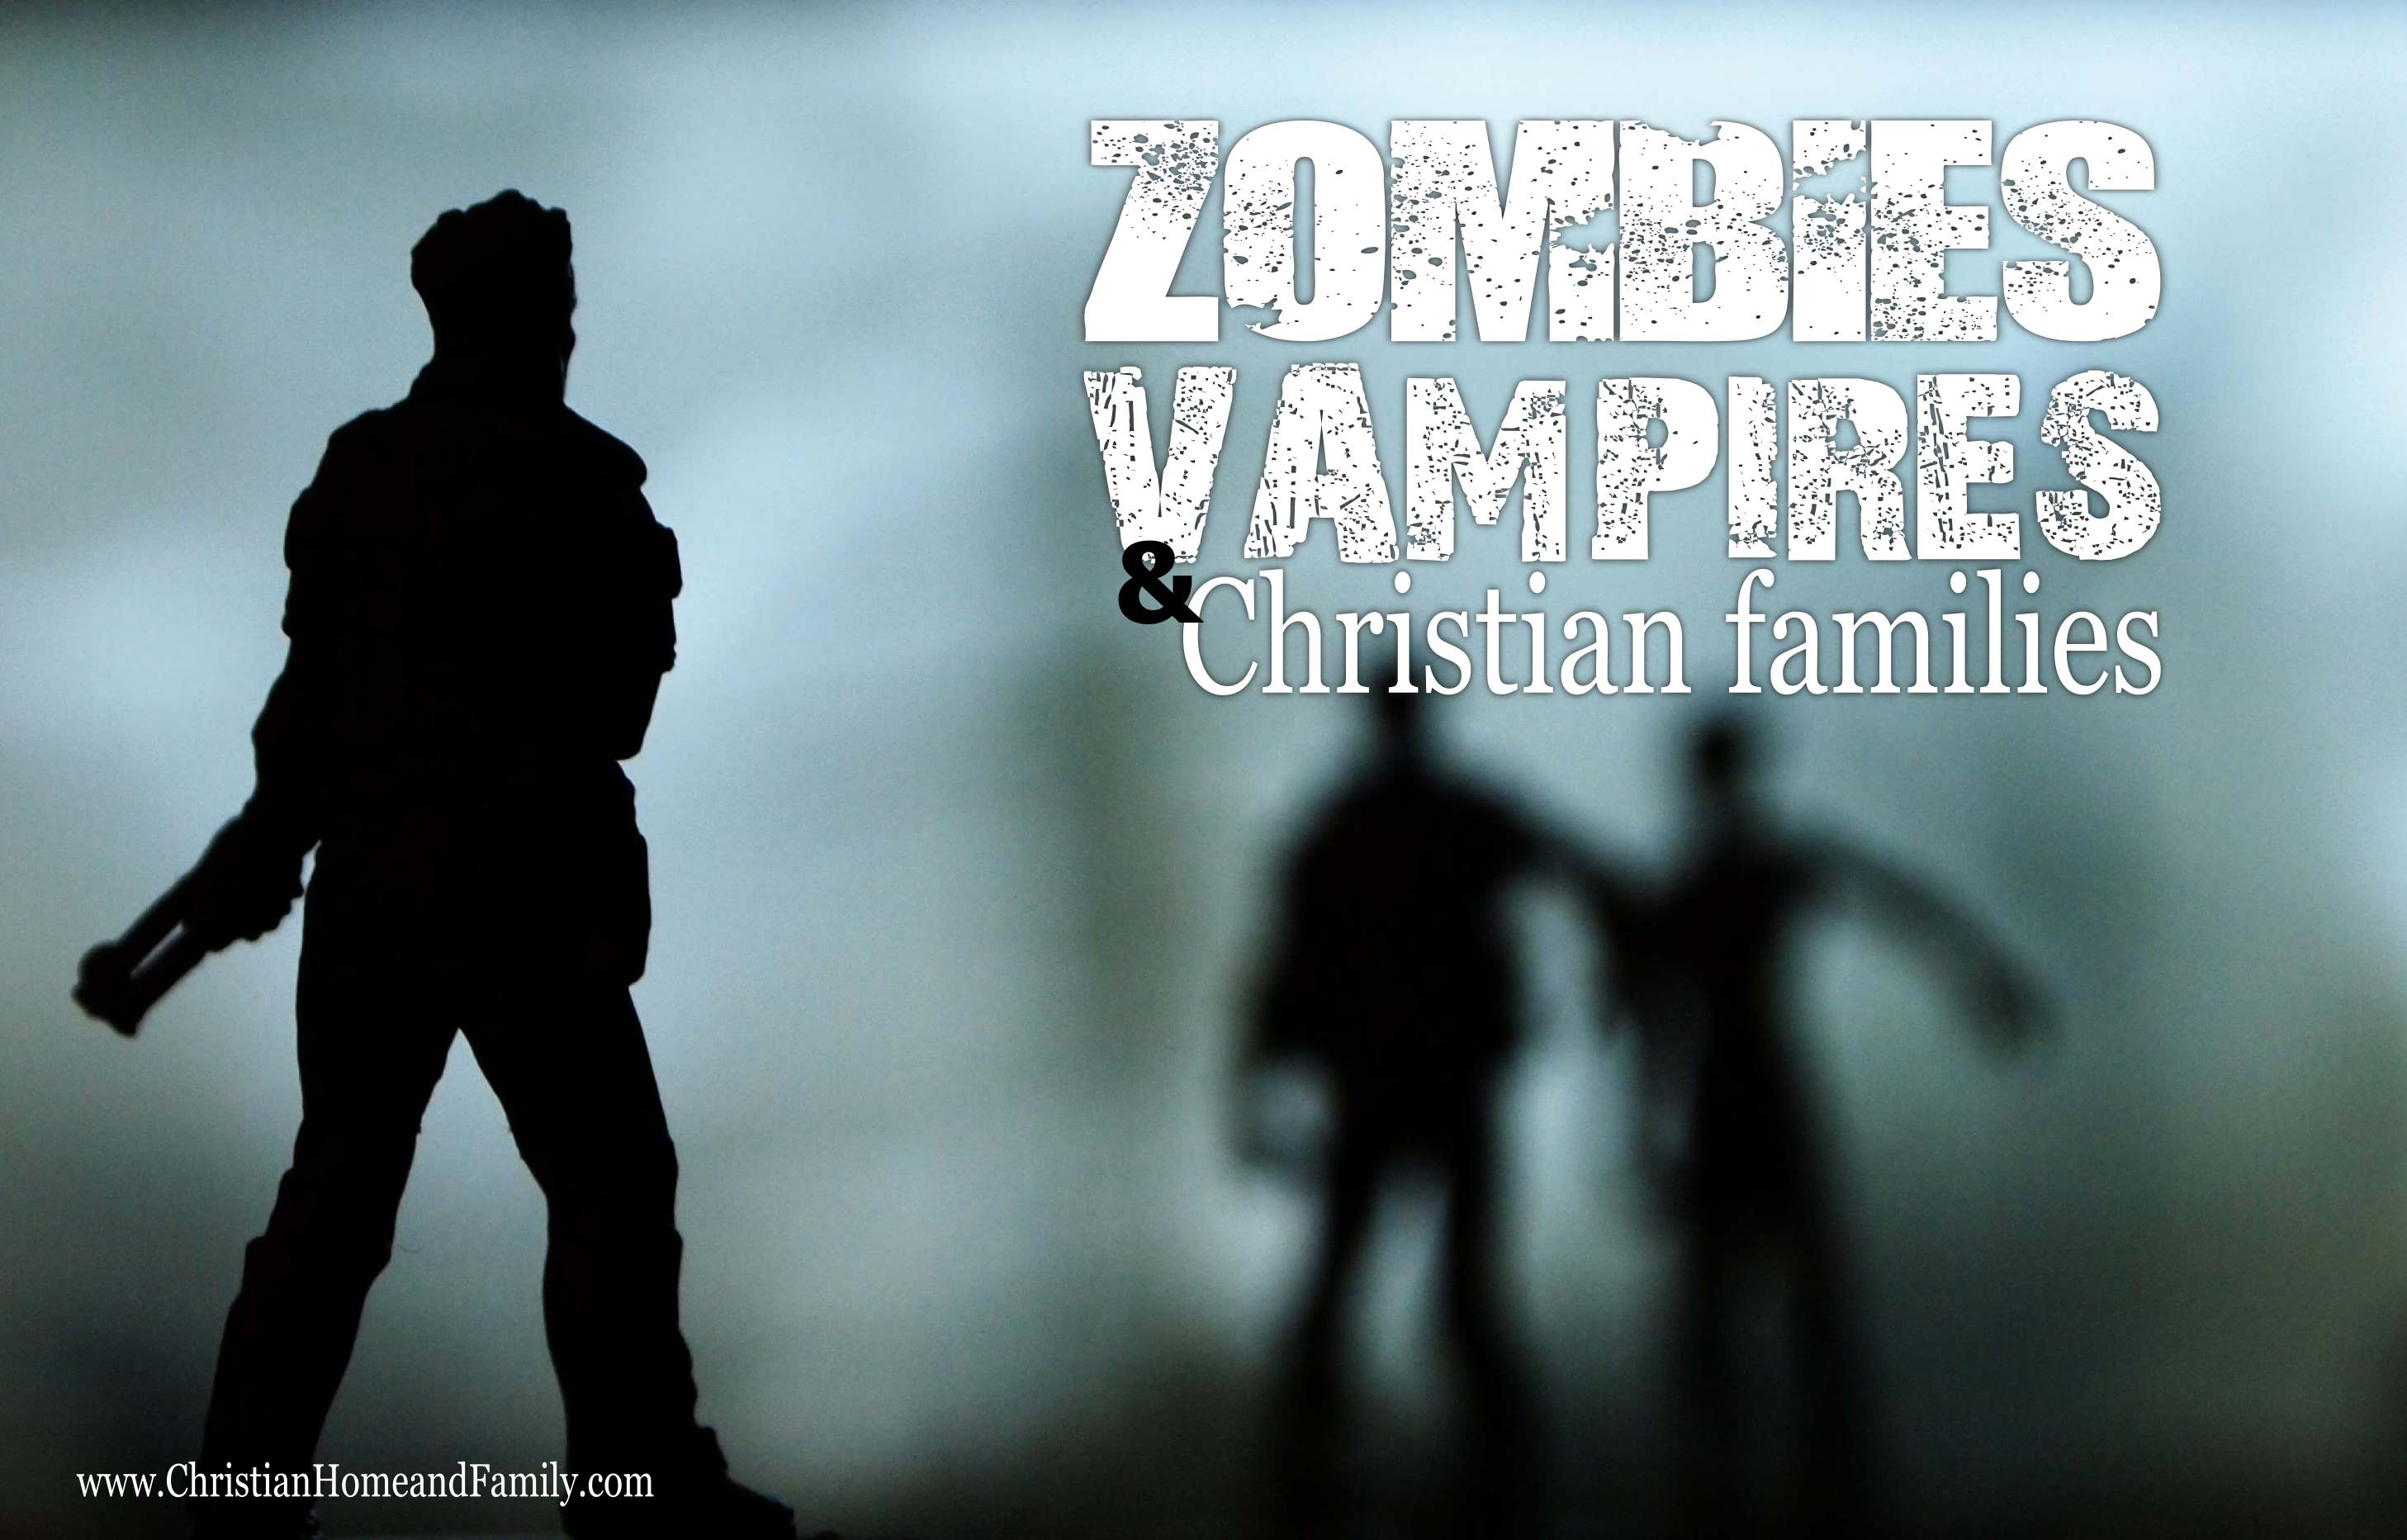 zombies_vampires_and_Christian_families